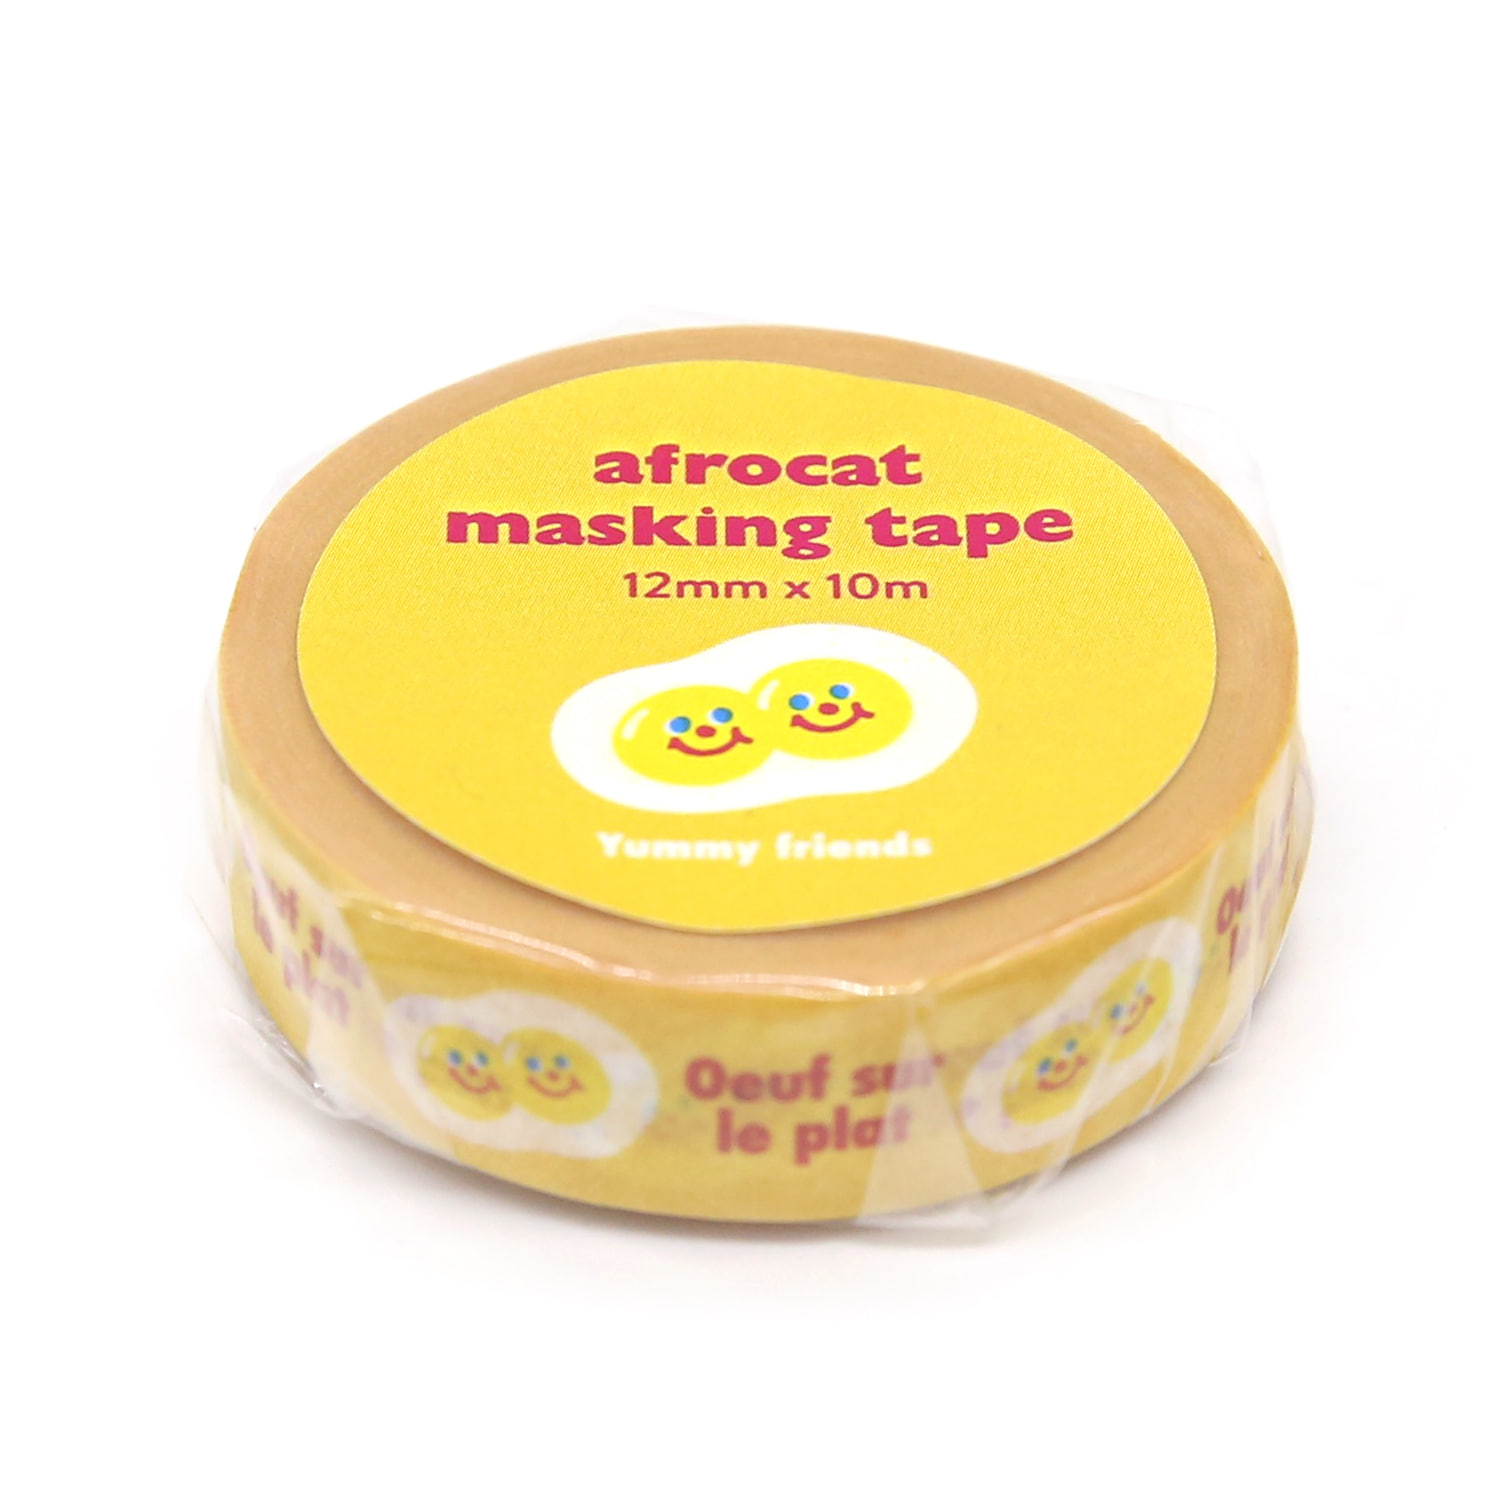 [afrocat masking tape] 14. Yammy friends _sunny side-up eggs 12mm